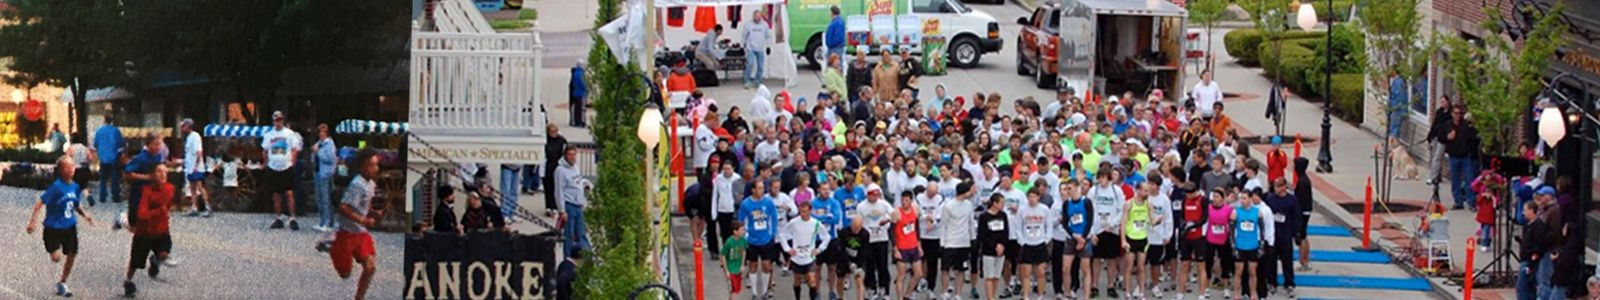 Discover Roanoke 10K/5K & 1 mile kids fun run